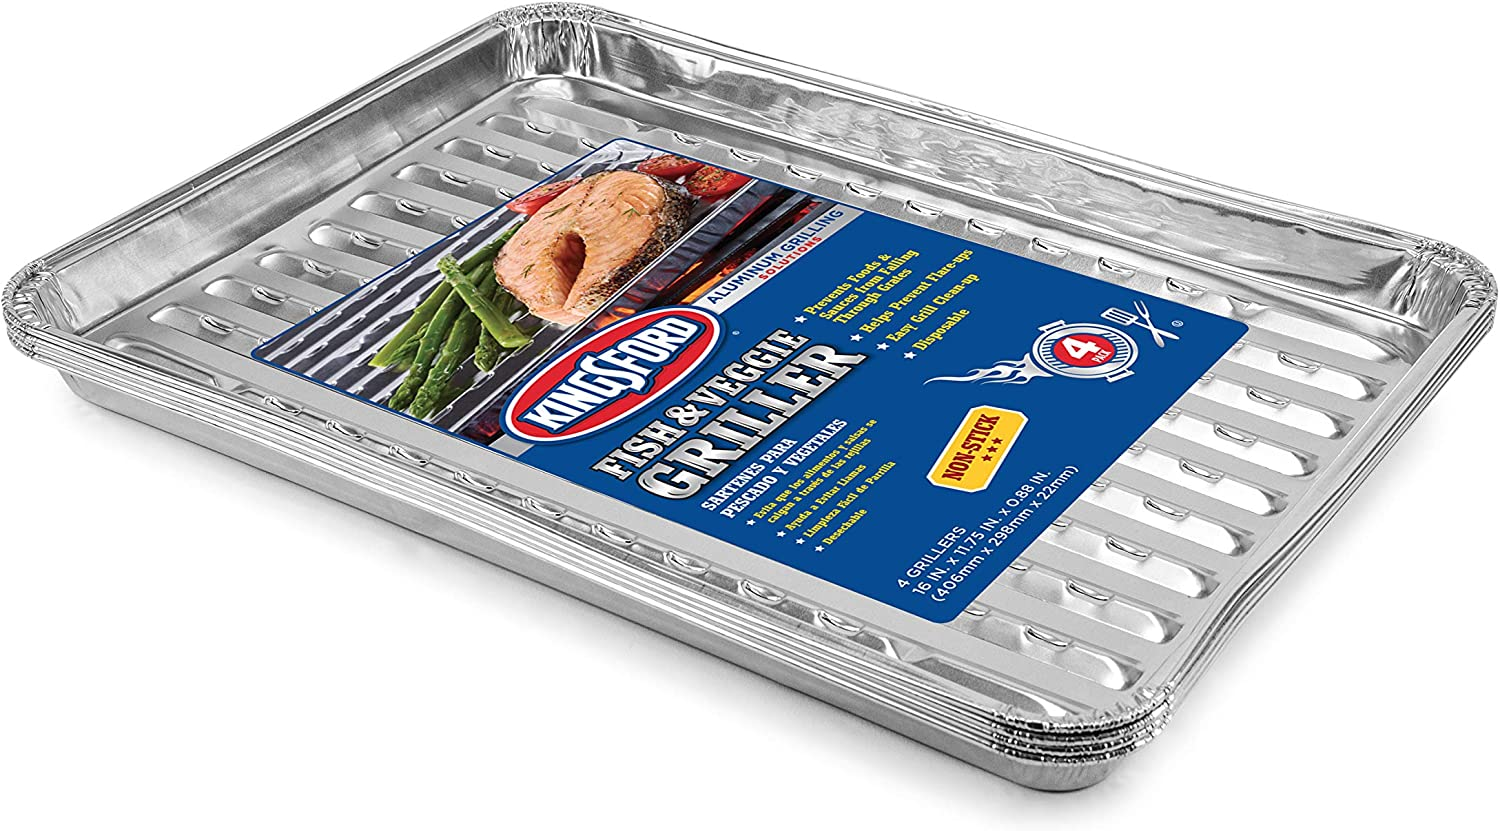 Kingsford Grilling Kingsford Fish and Veggie Aluminum Grill Liners, 8 Count, Silver   No More Food Falling Through Grill Grates   Kingsford Grill Accessories   Non-Stick Disposable Grilling Liners